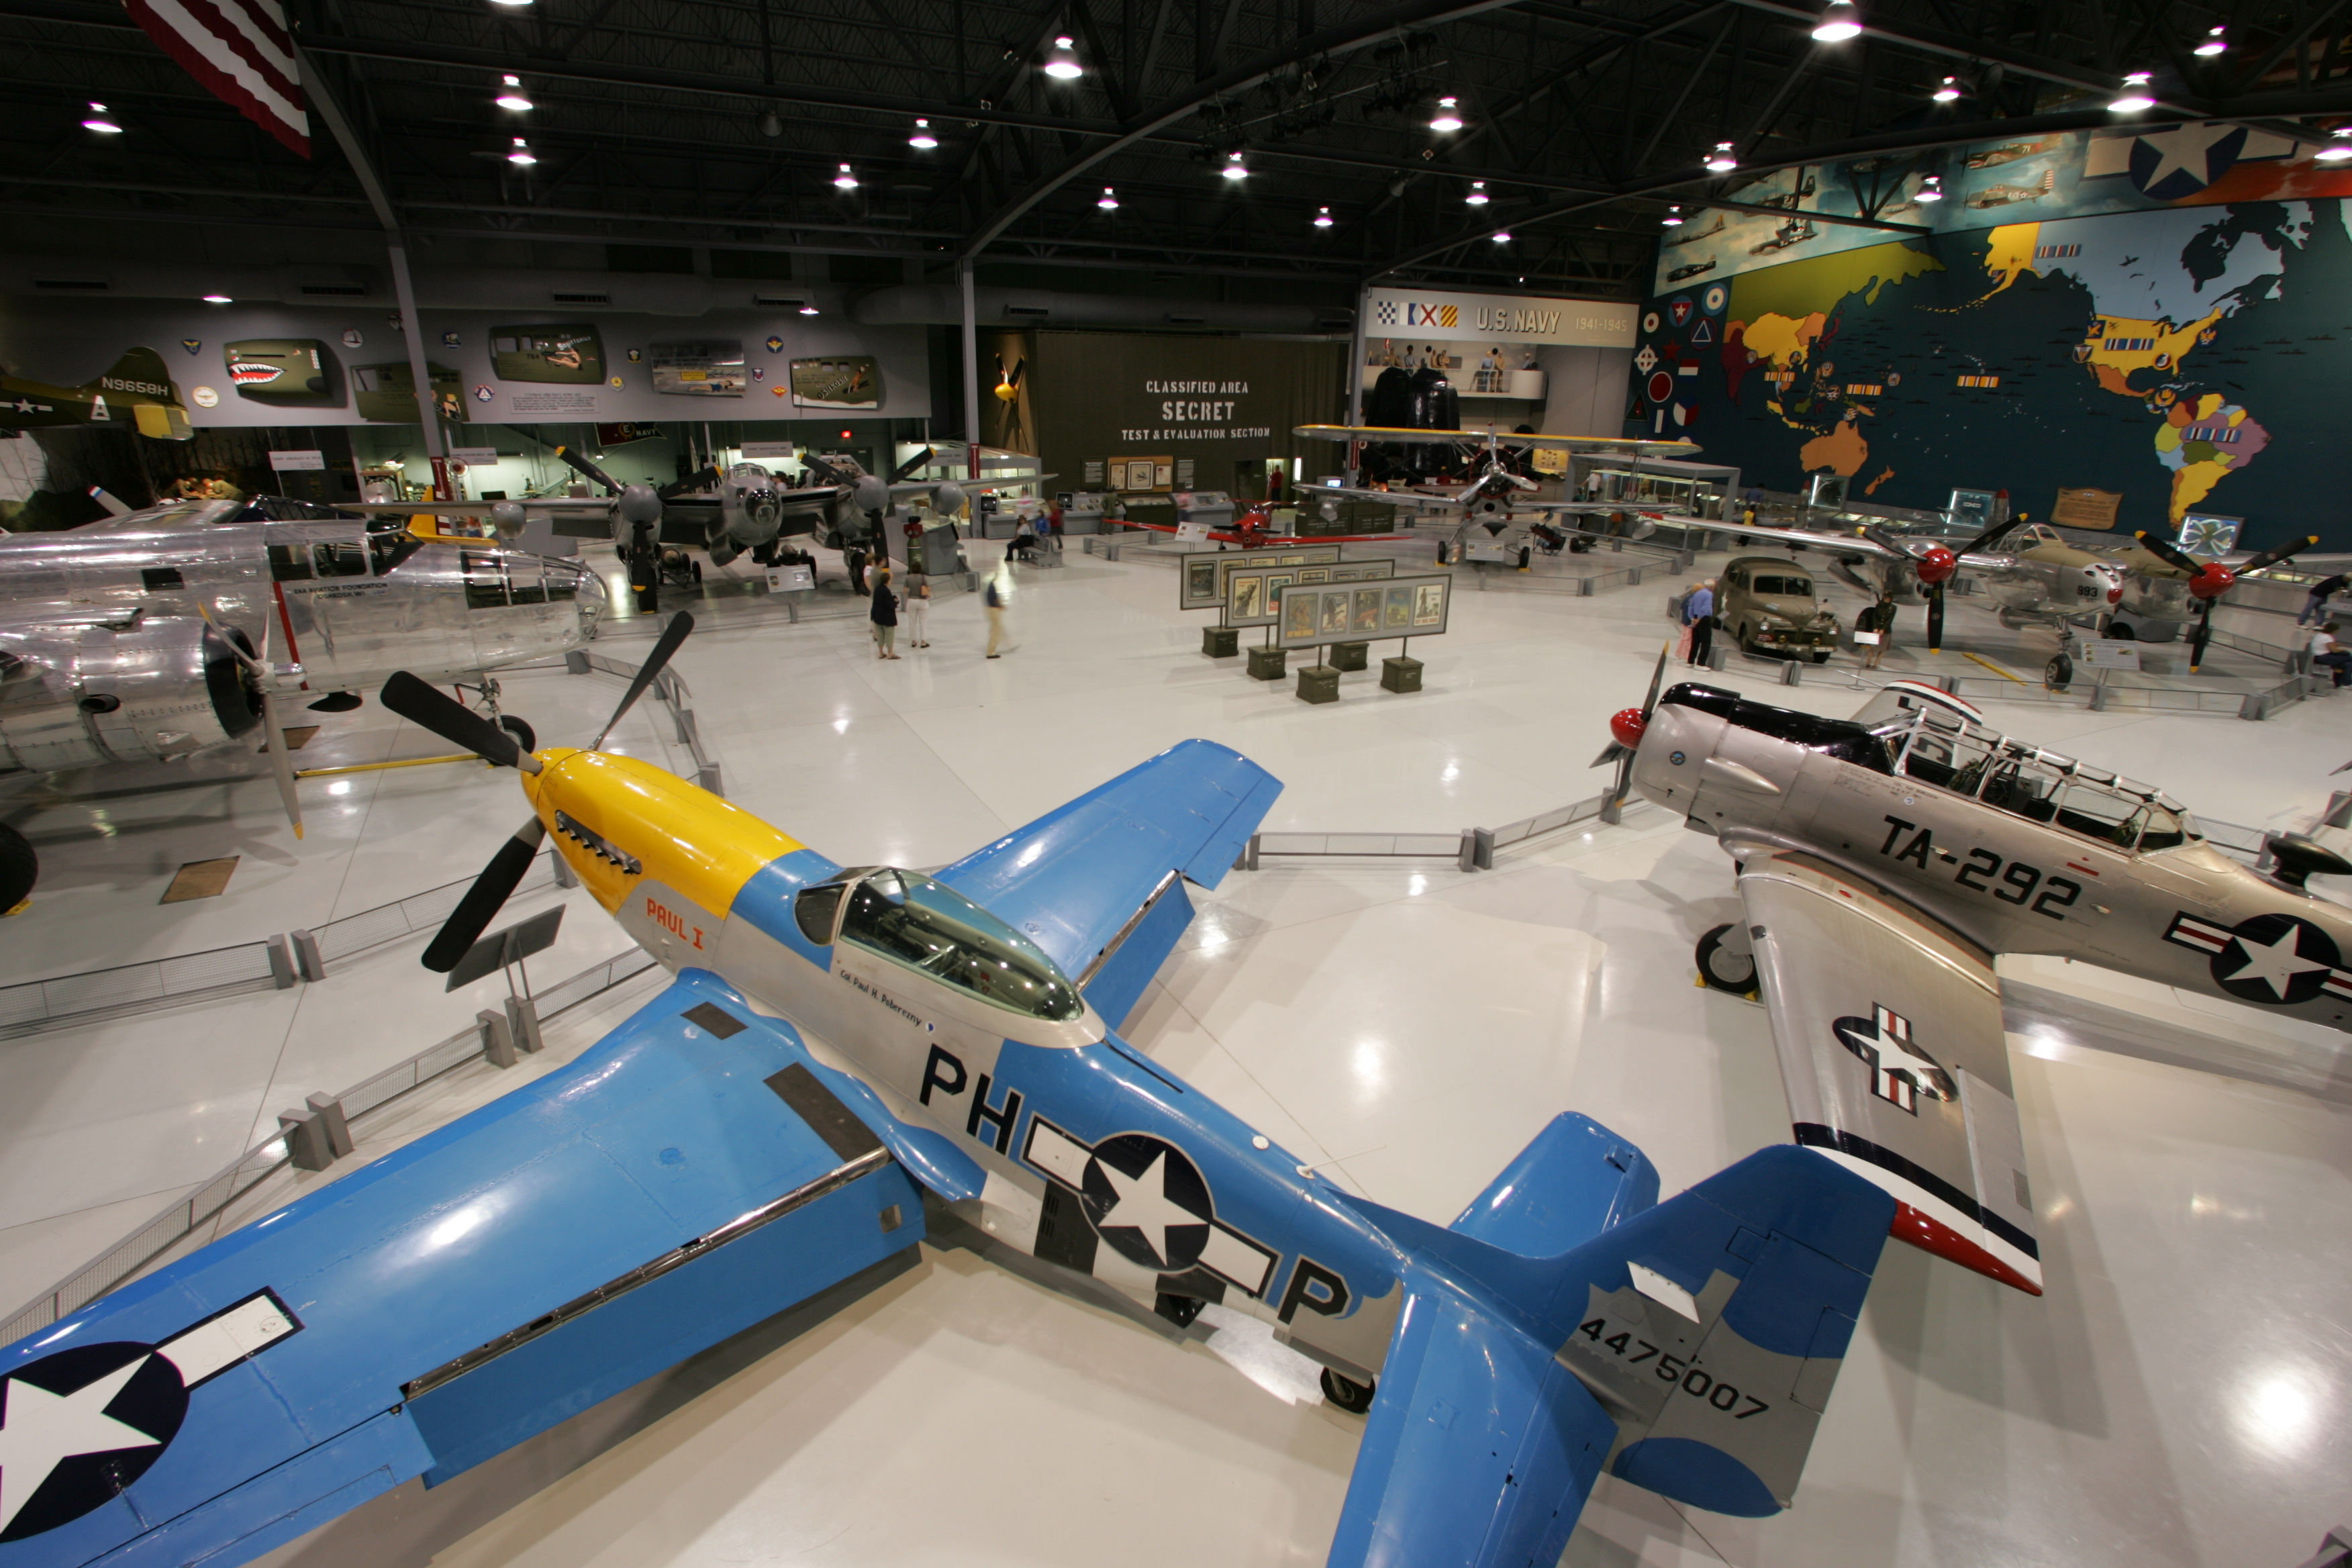 The Eagle Hangar where vintage World War II aircraft are on display.